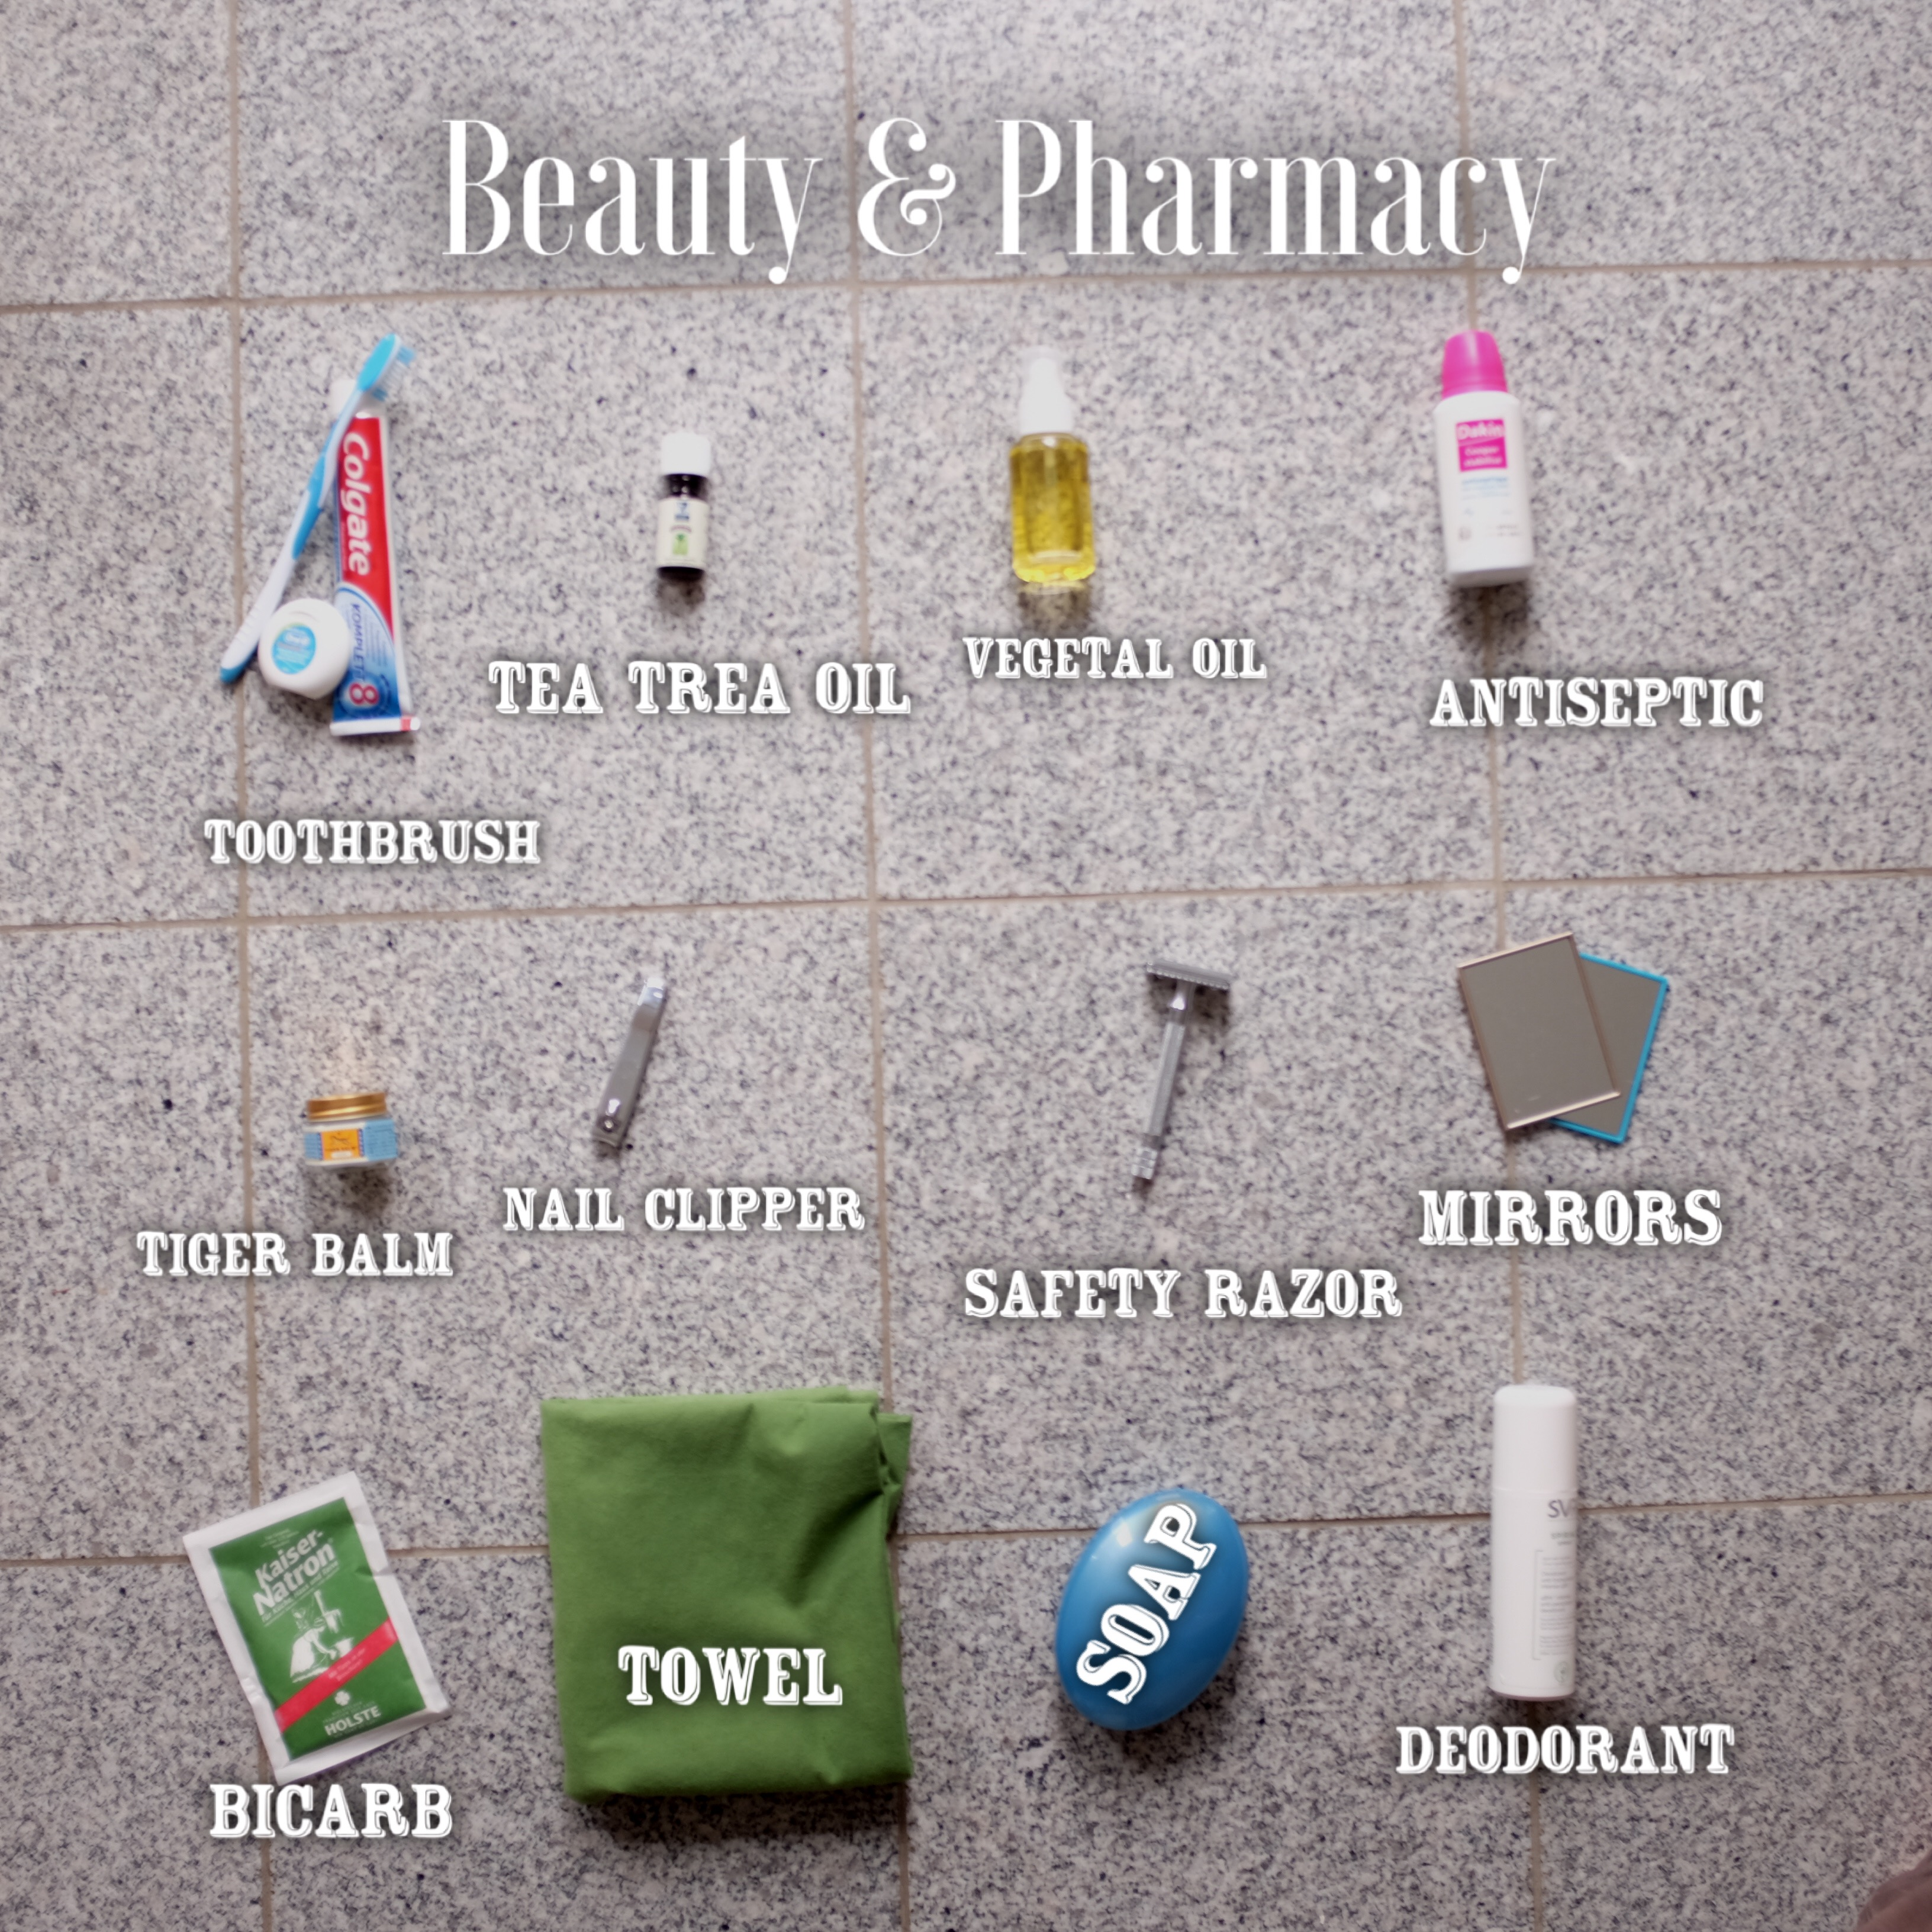 Beauty & Pharmacy